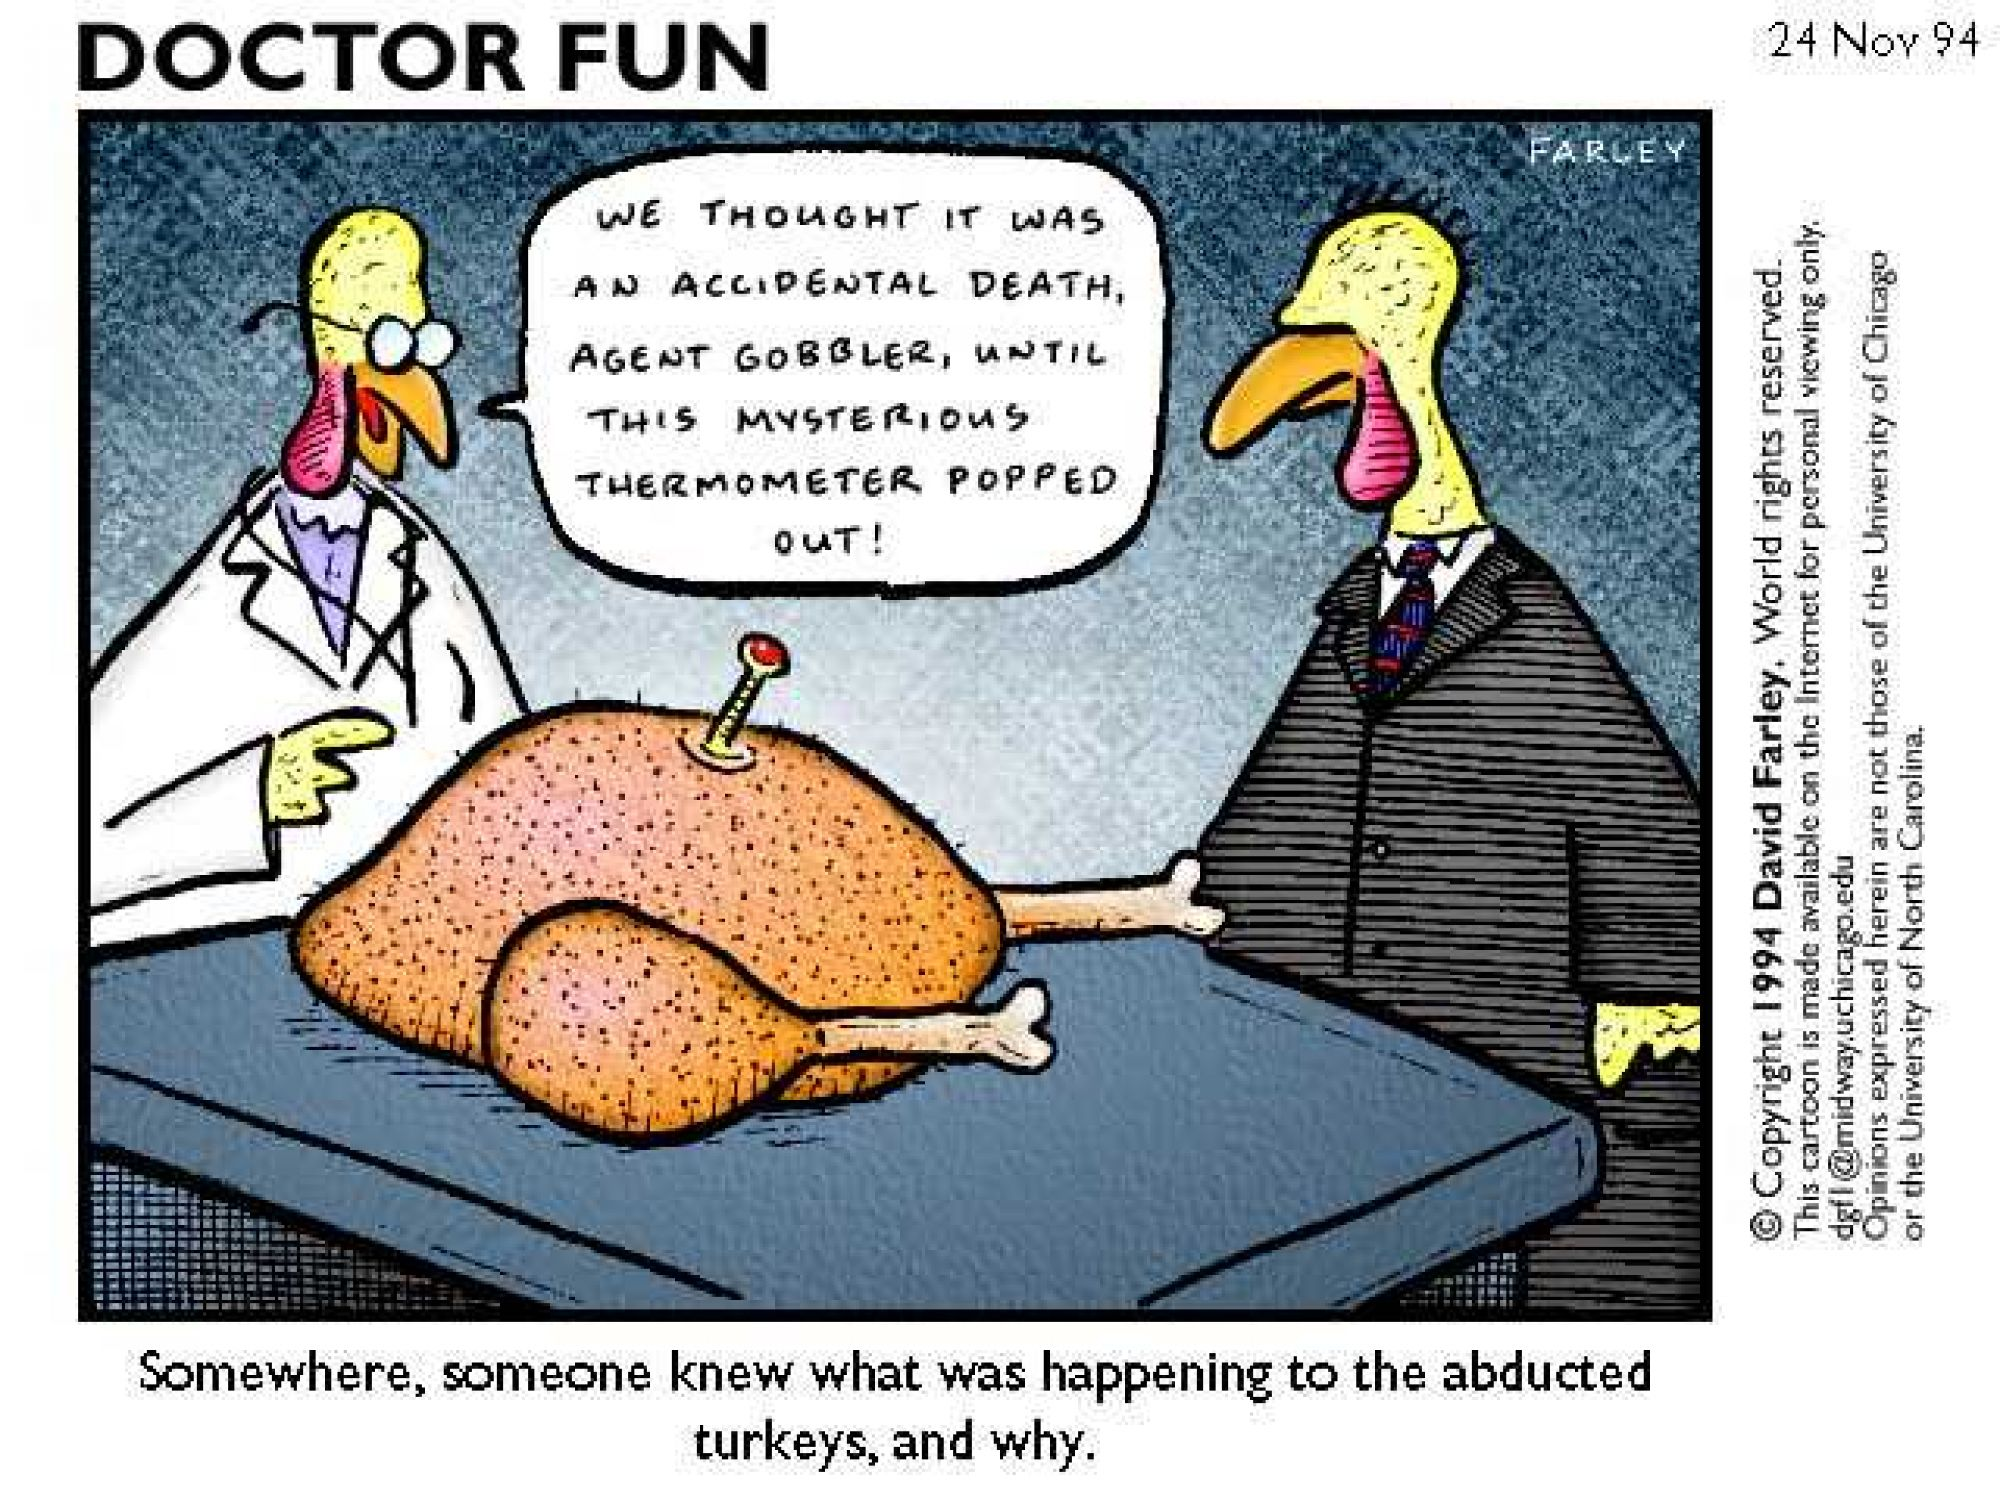 Funny thanksgiving jokes pictures Blog About Paris, Fashion, Food Travel Solli's Lifestyle